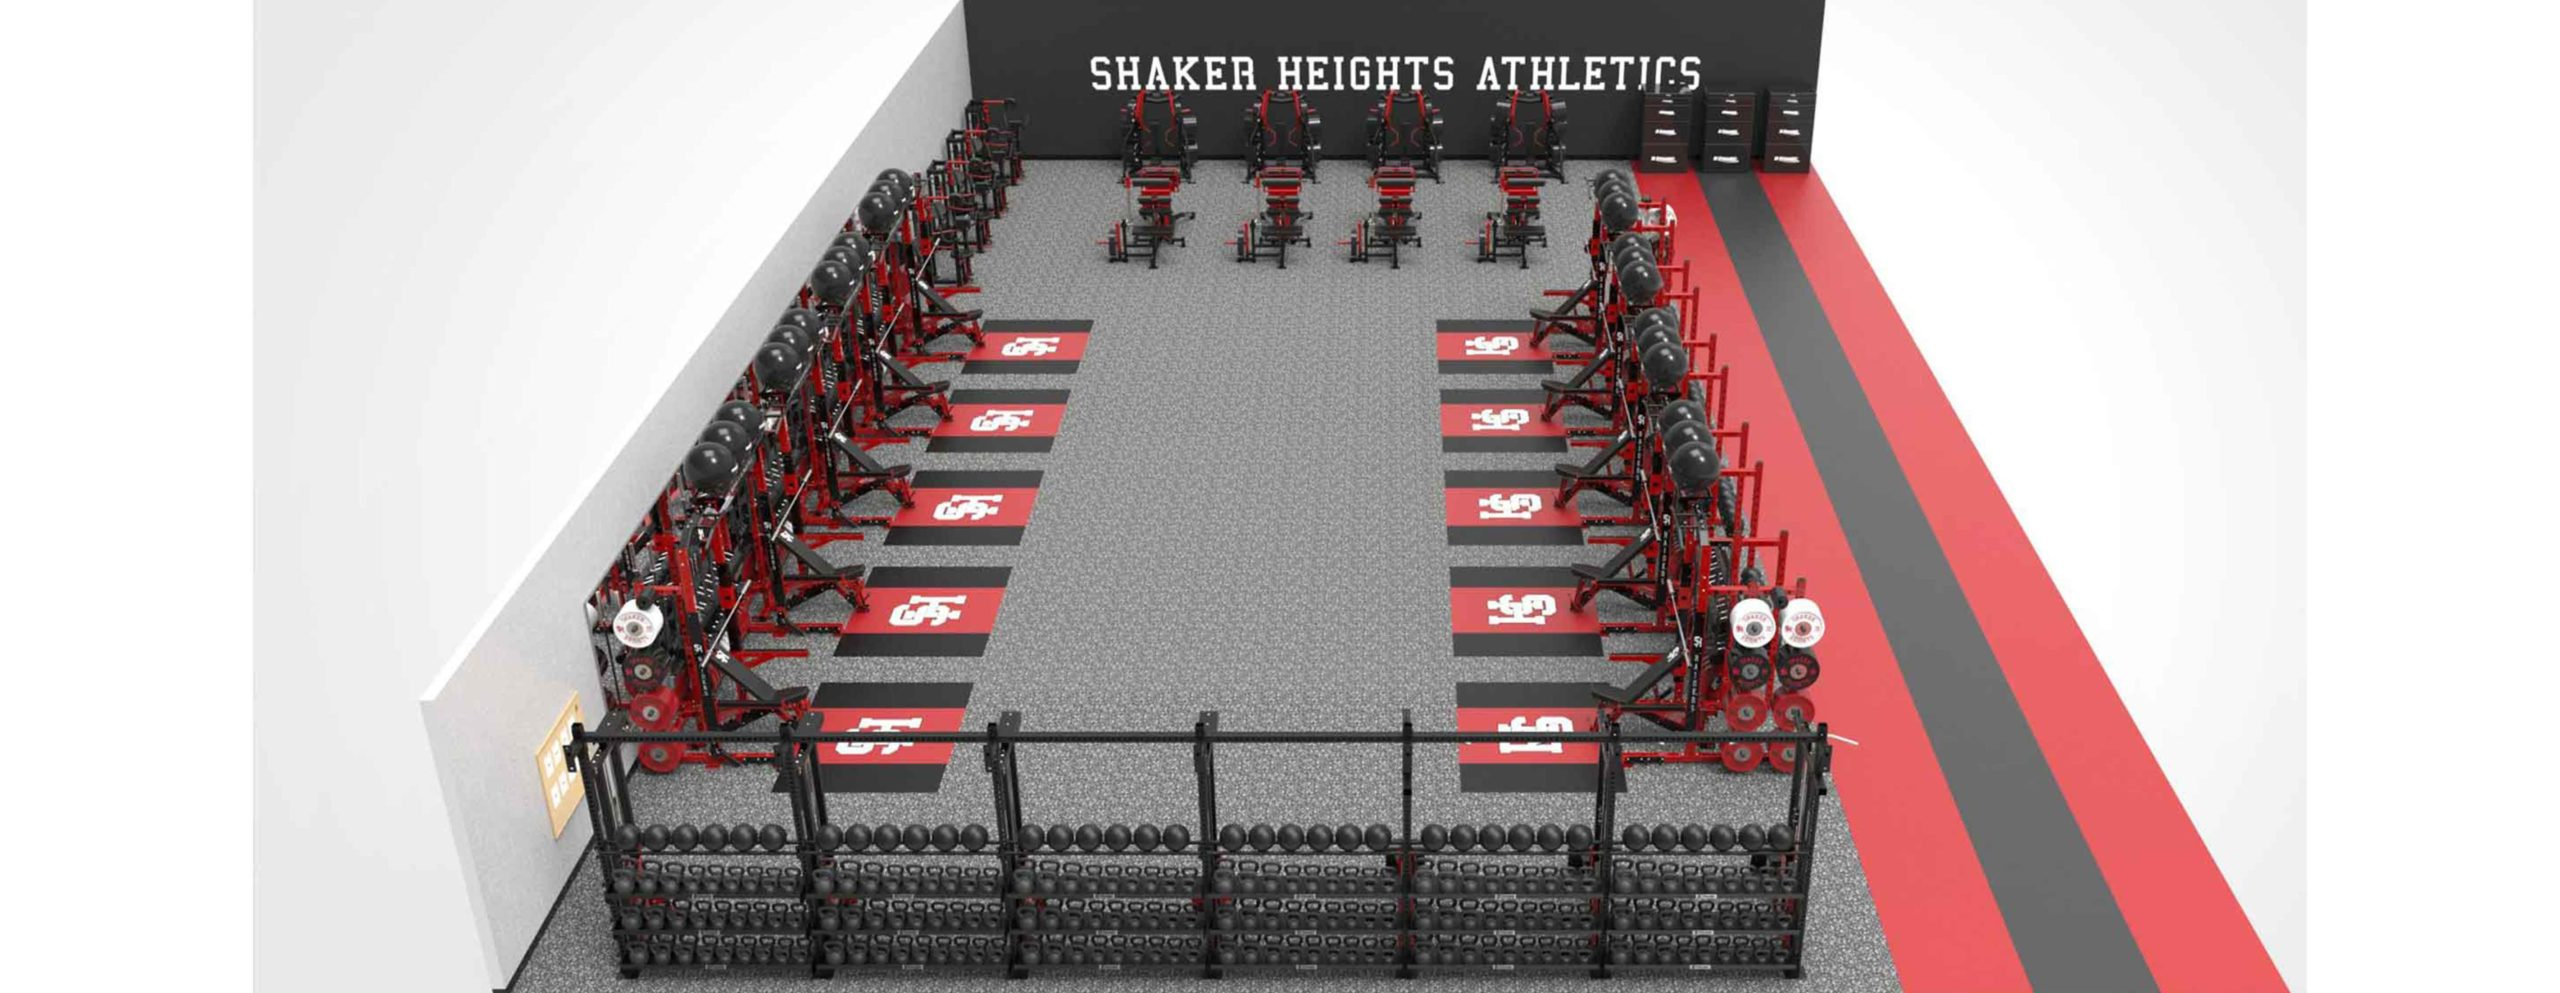 proposed athletic center